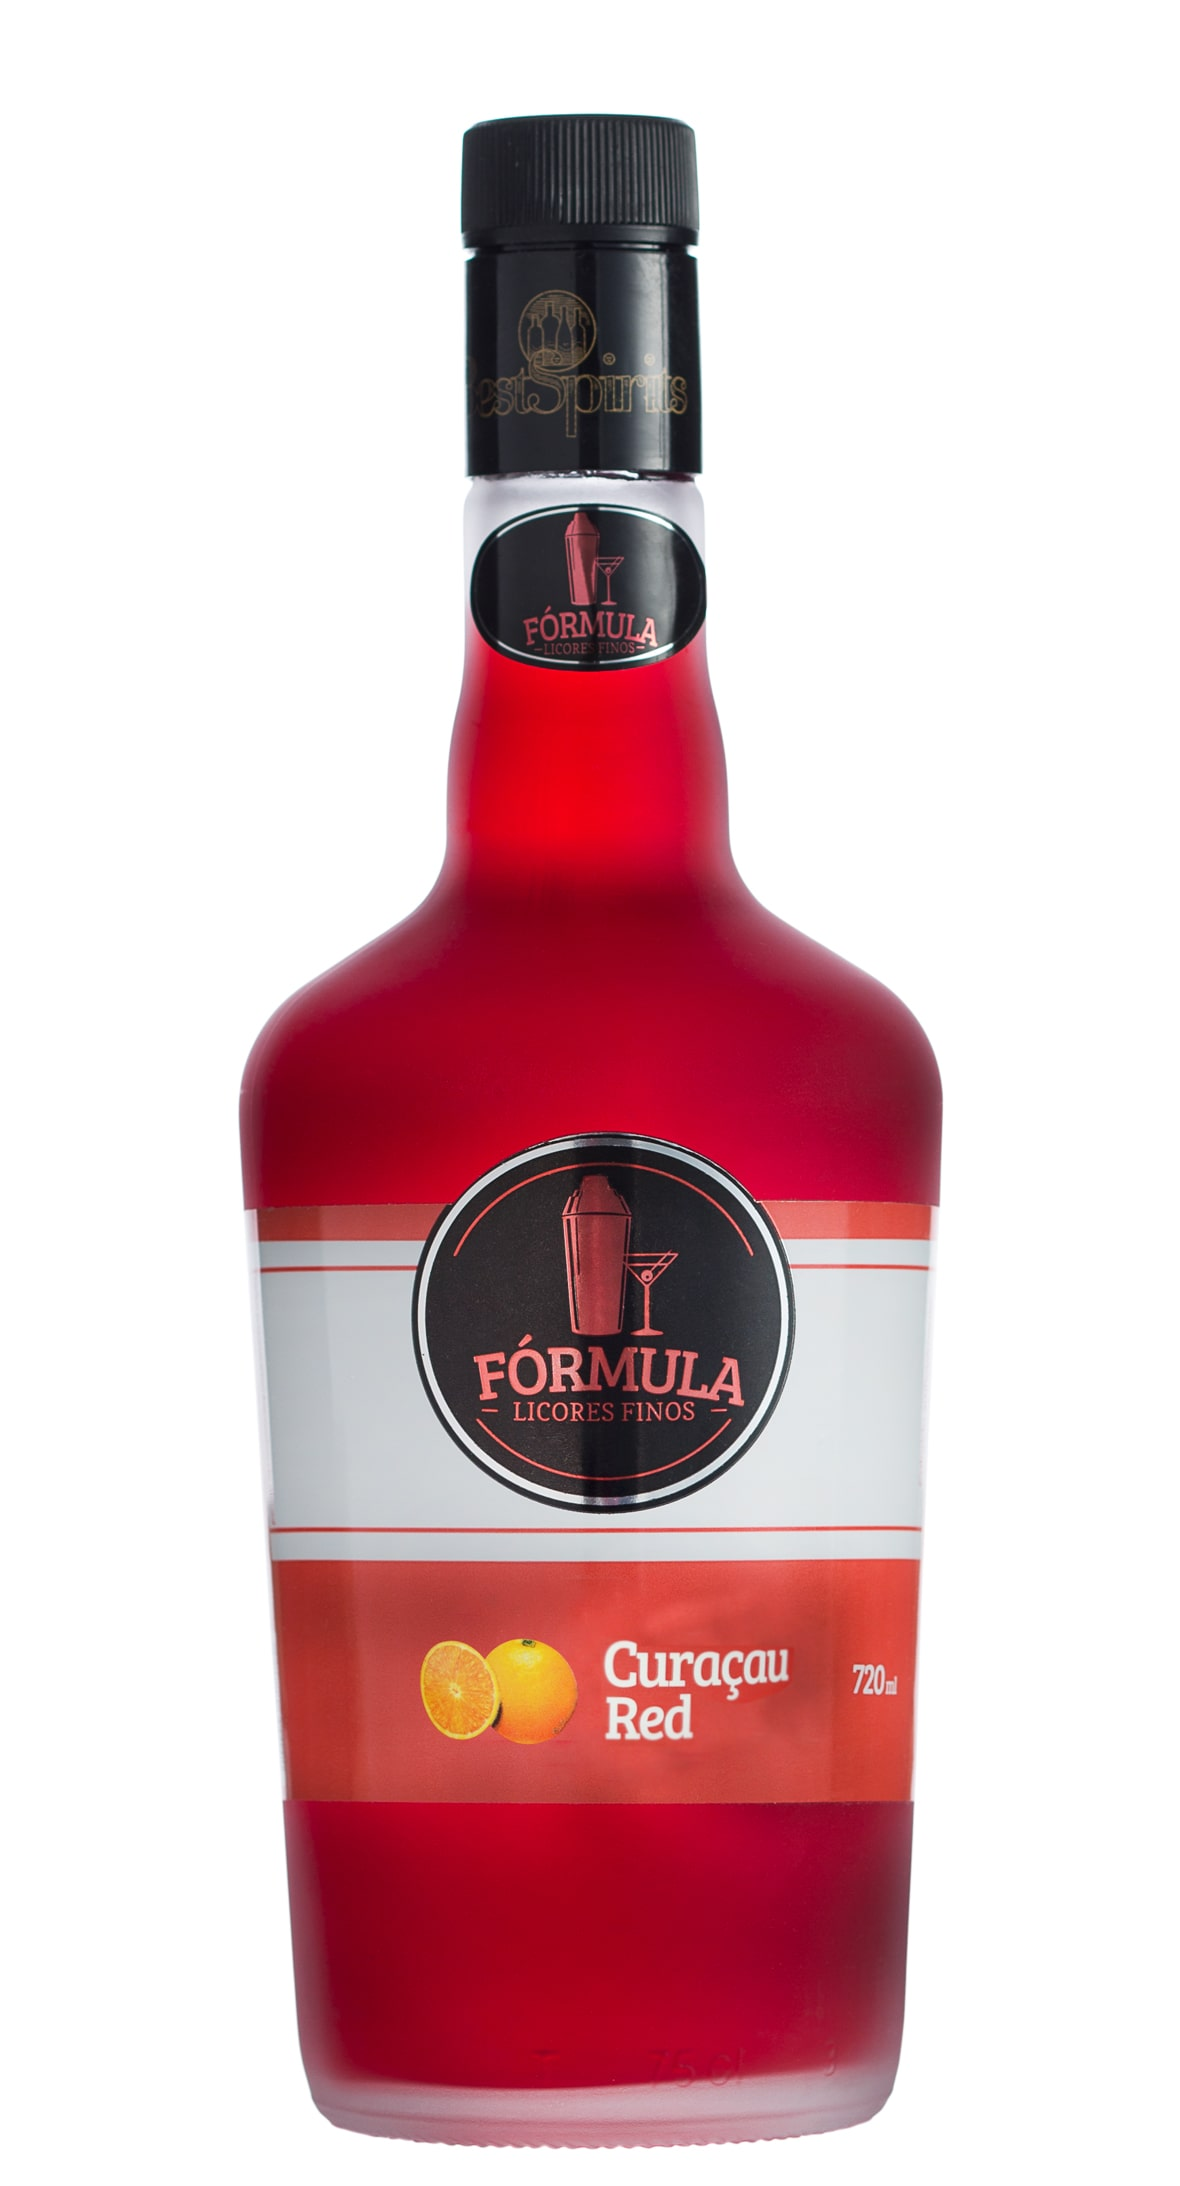 Licor Fórmula Curaçau Red 720ml